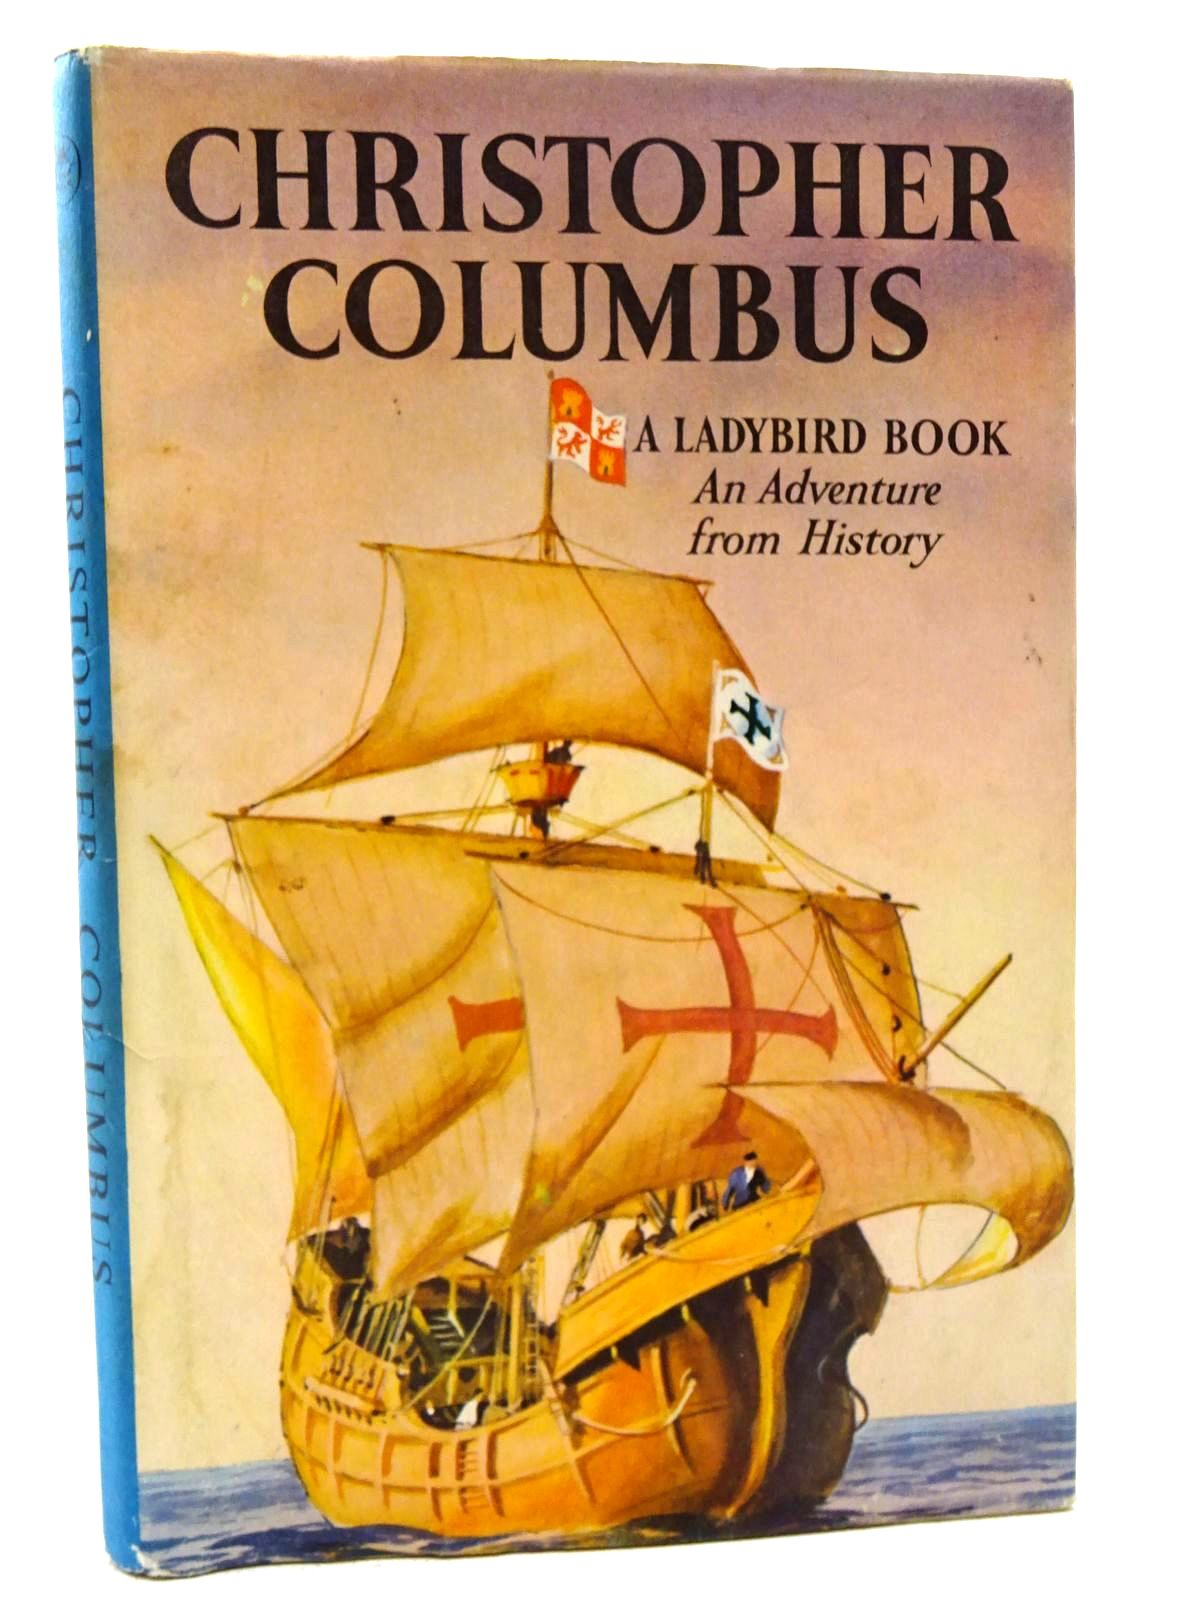 Photo of CHRISTOPHER COLUMBUS written by Peach, L. Du Garde illustrated by Kenney, John published by Wills & Hepworth Ltd. (STOCK CODE: 2124653)  for sale by Stella & Rose's Books